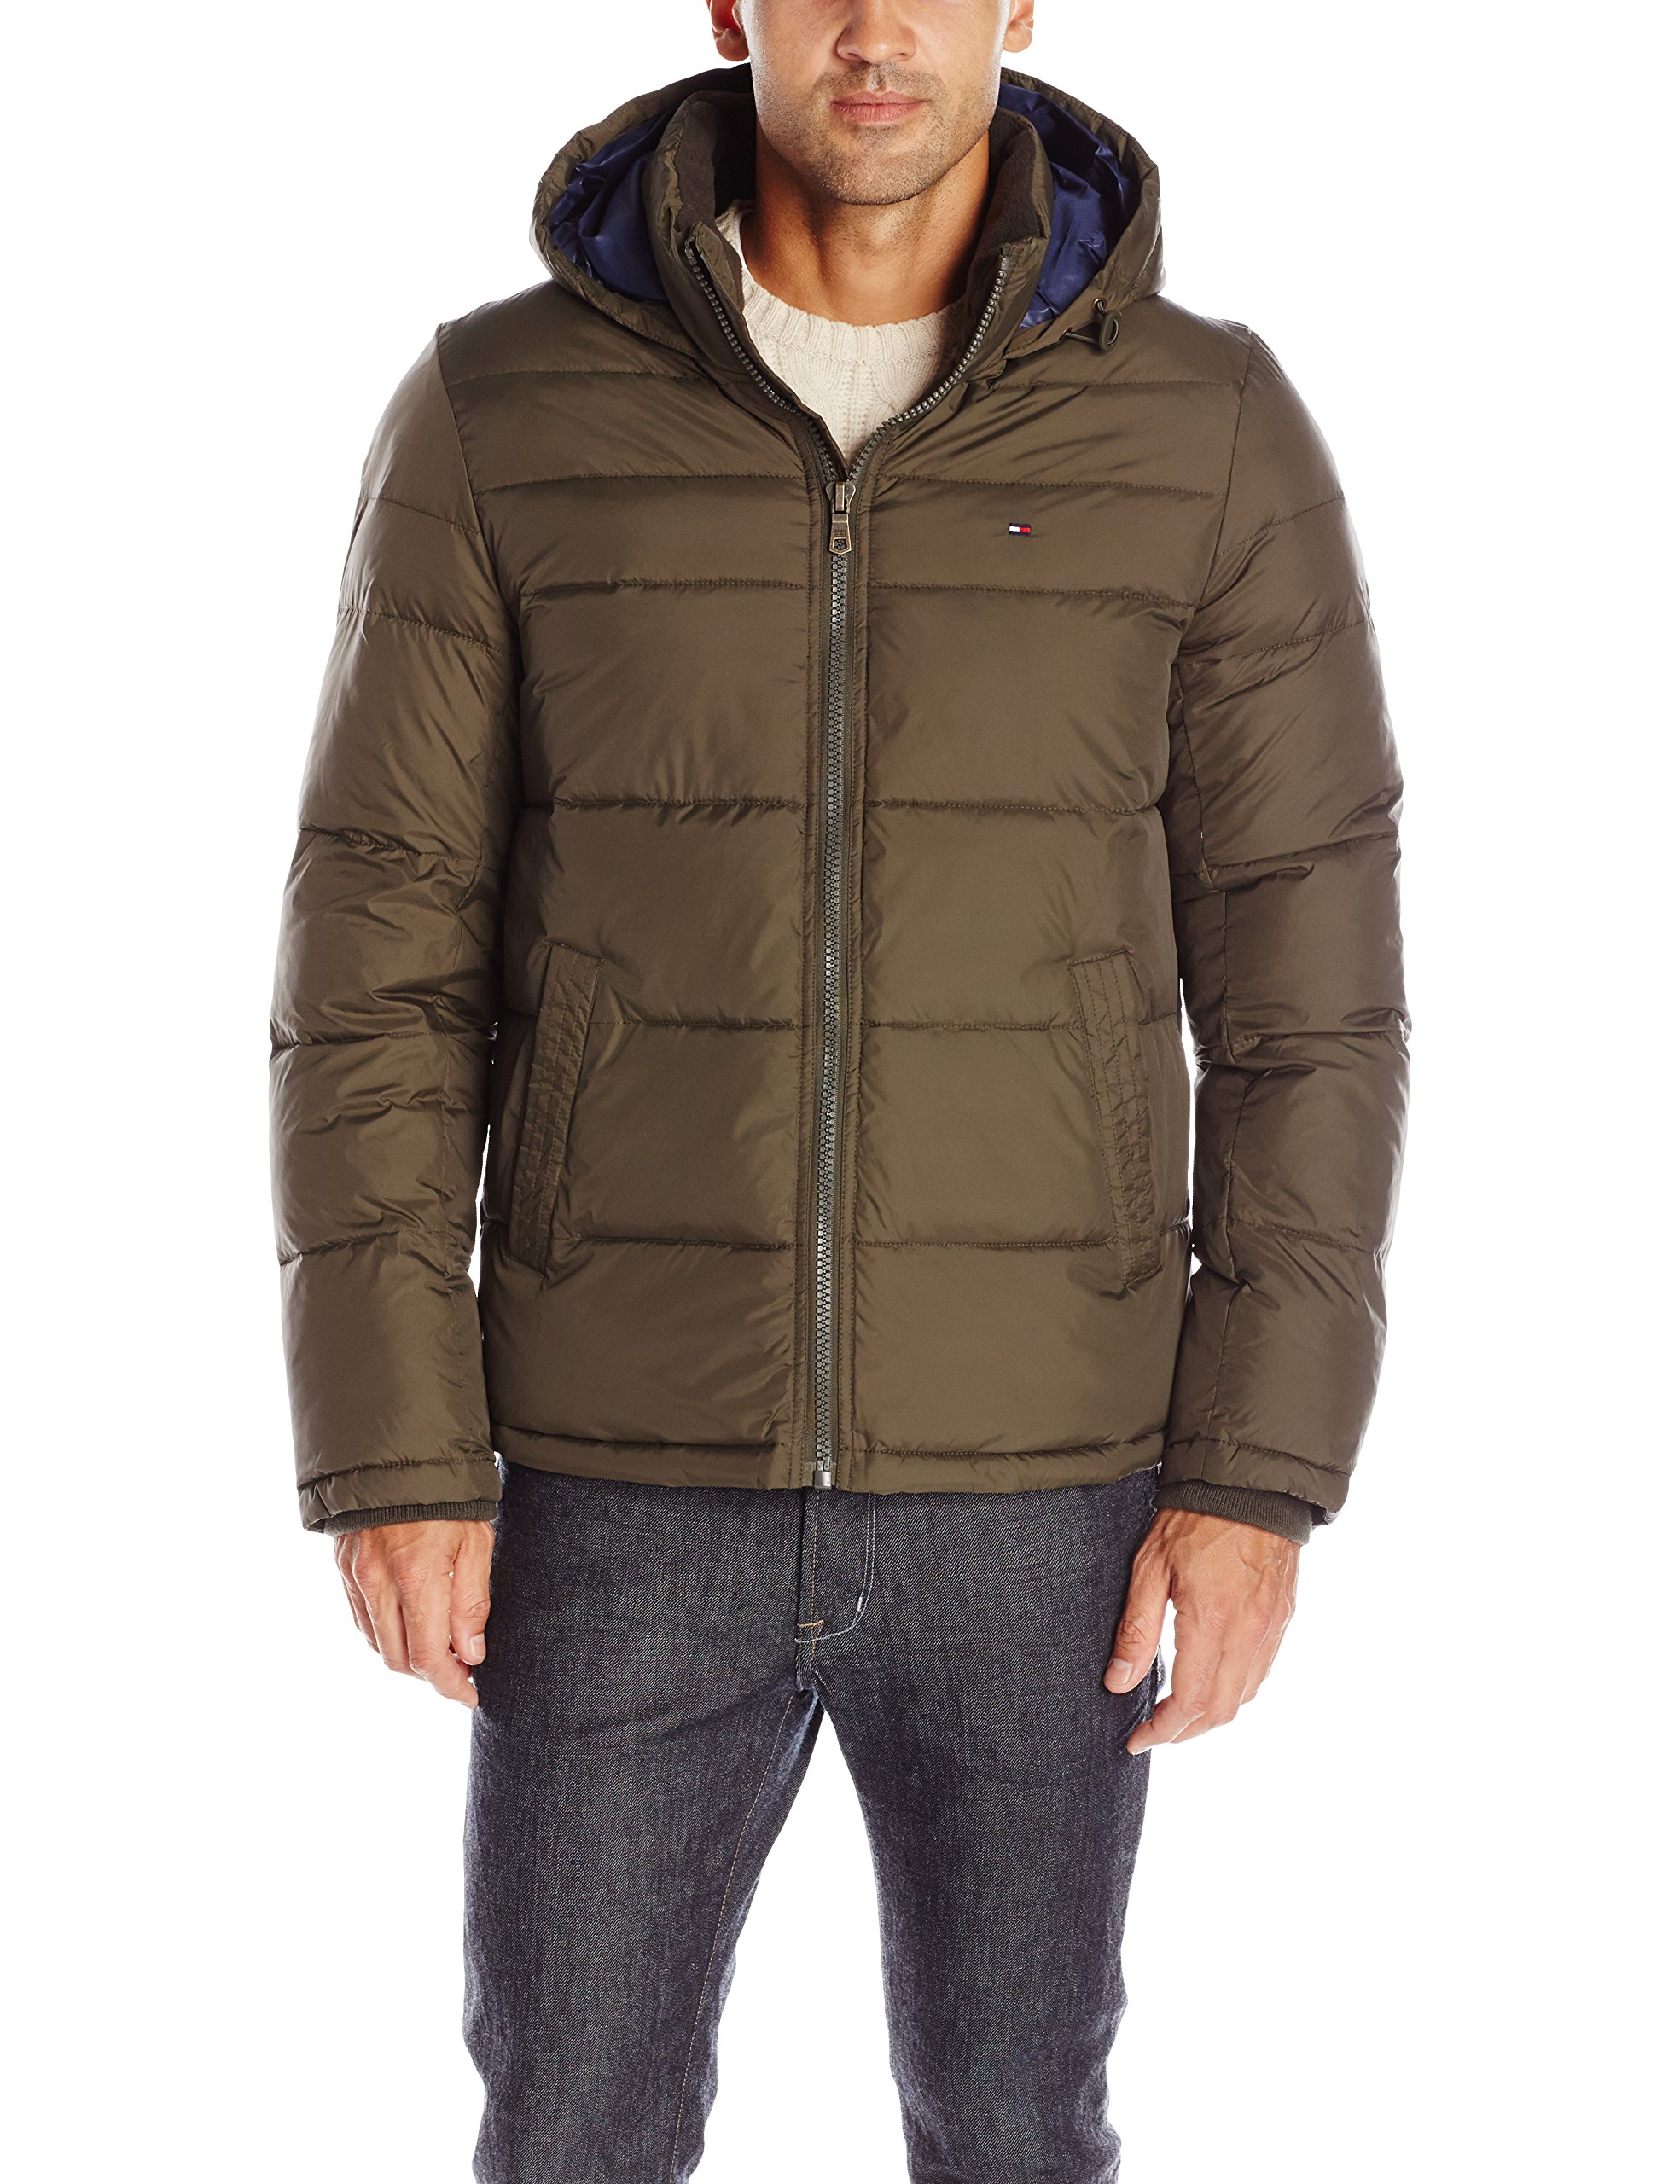 Tommy Hilfiger Men's Classic Hooded Puffer Jacket, Olive, XXL